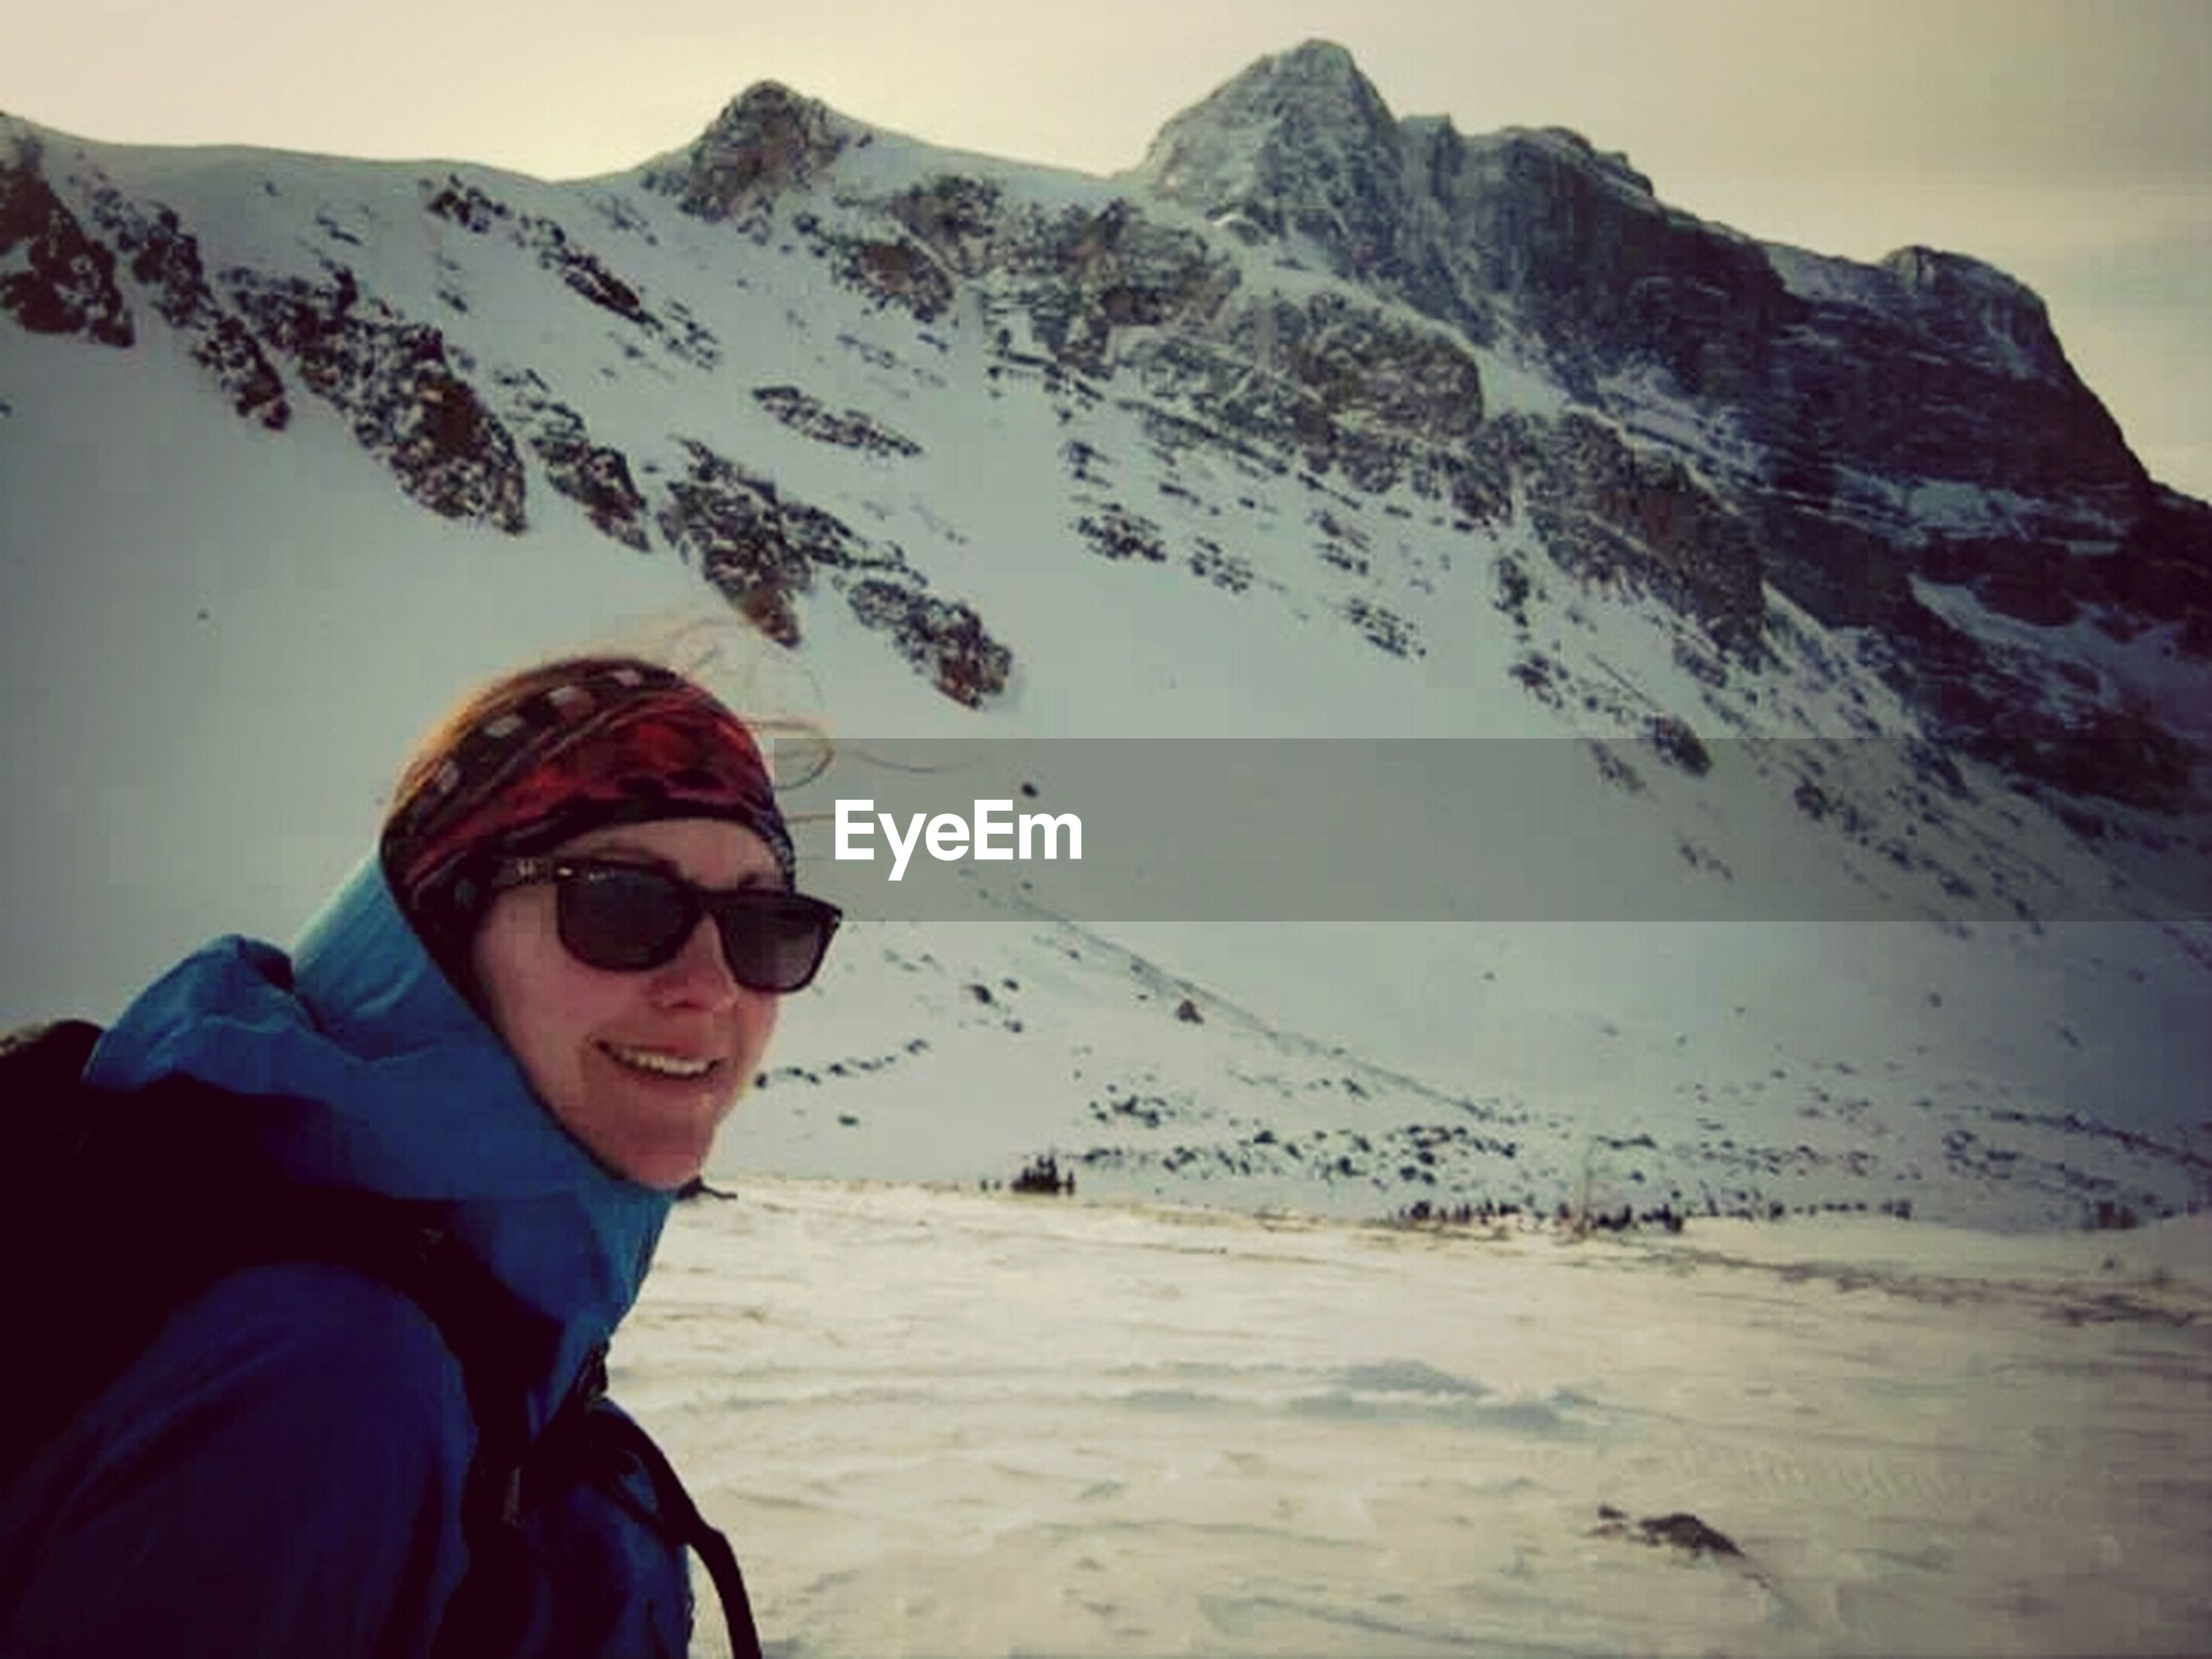 snow, winter, cold temperature, lifestyles, leisure activity, mountain, season, warm clothing, young adult, person, looking at camera, portrait, young men, mountain range, casual clothing, smiling, vacations, weather